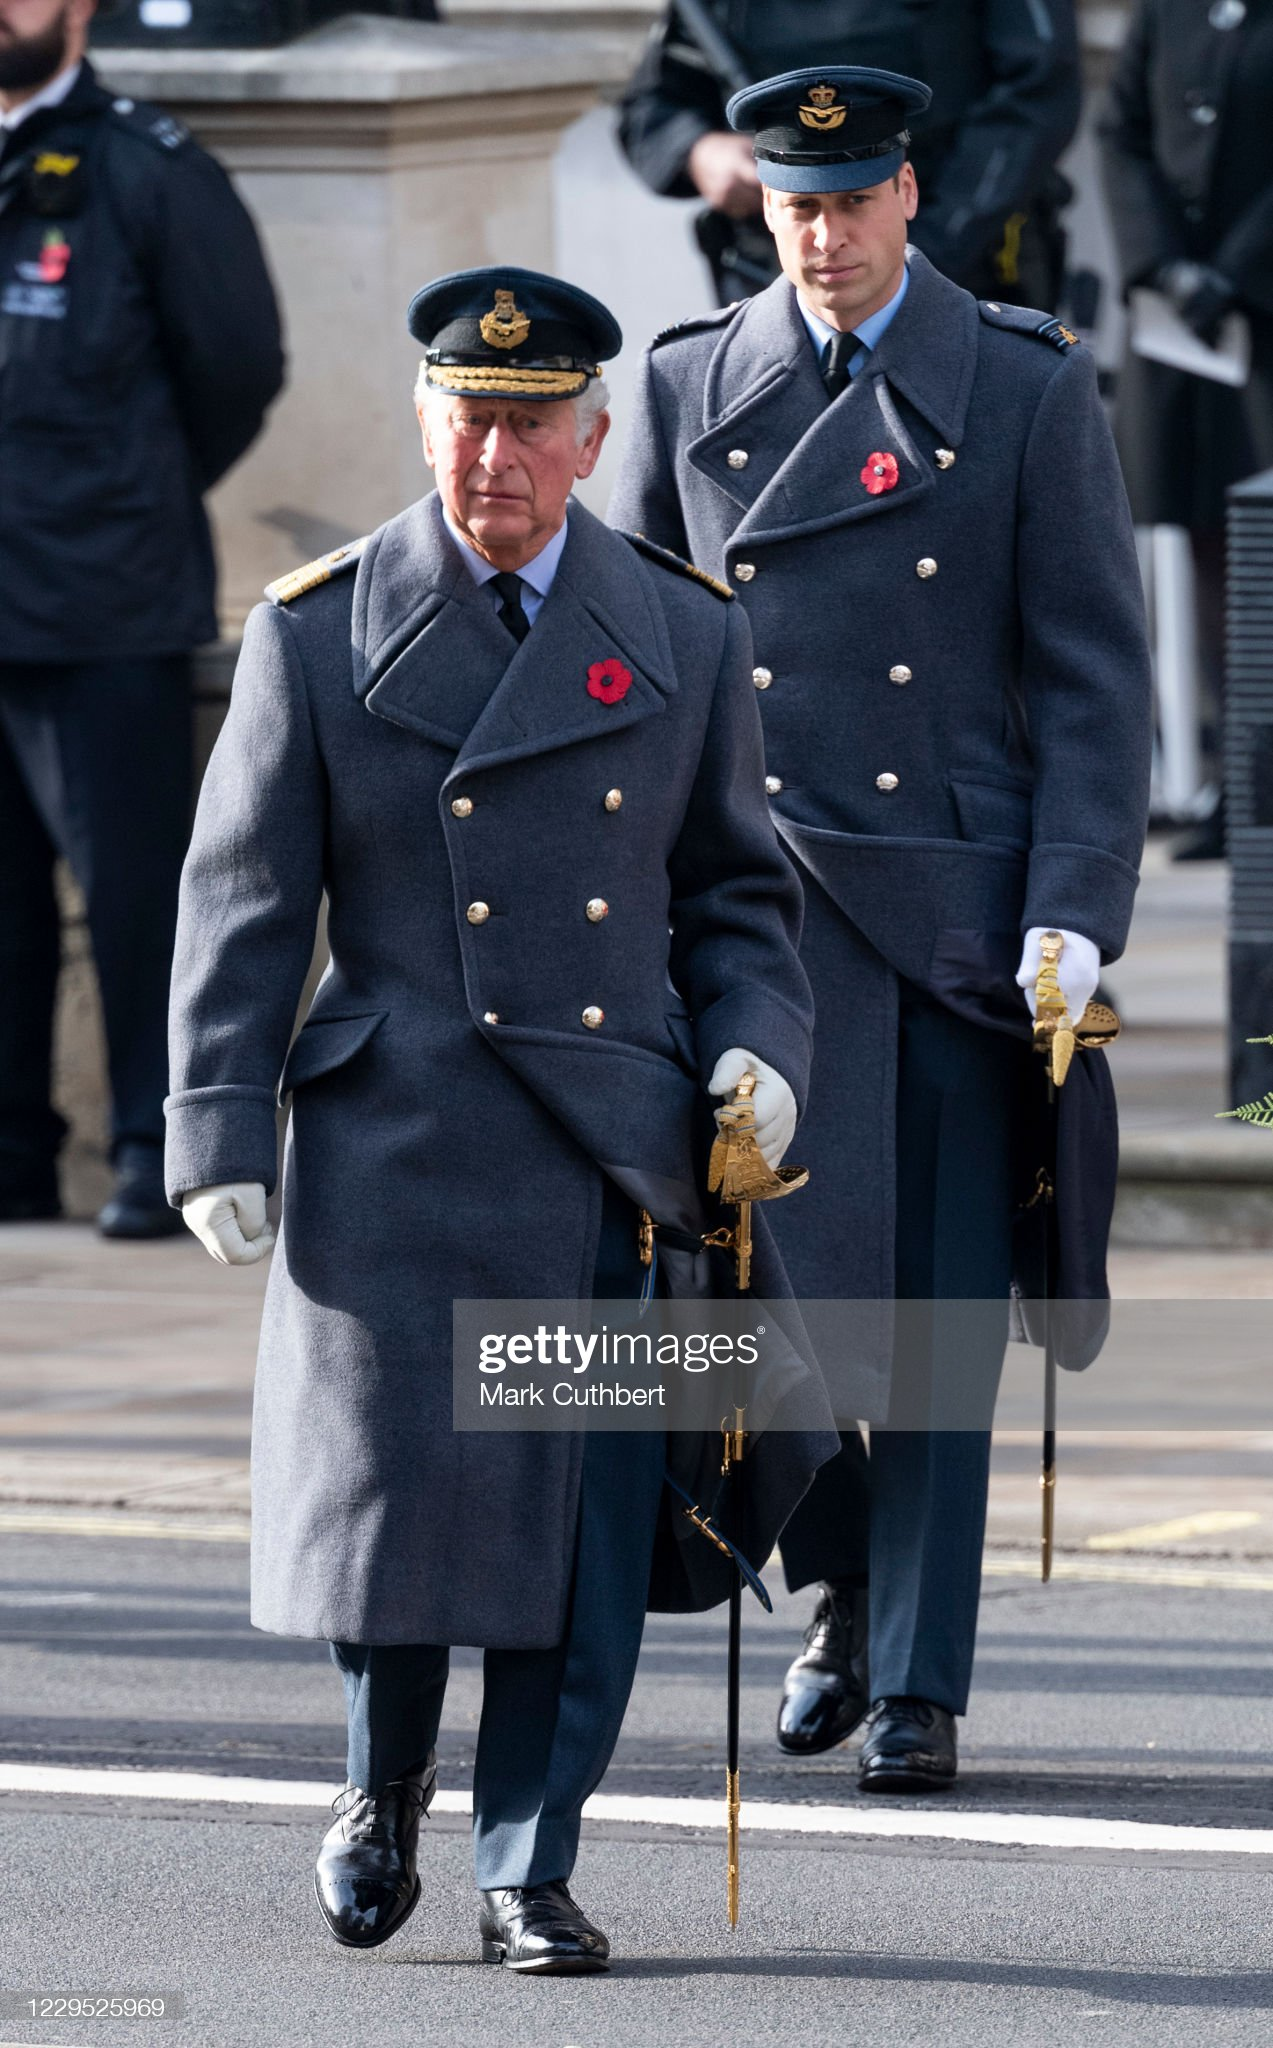 https://media.gettyimages.com/photos/prince-charles-prince-of-wales-and-prince-william-duke-of-cambridge-picture-id1229525969?s=2048x2048